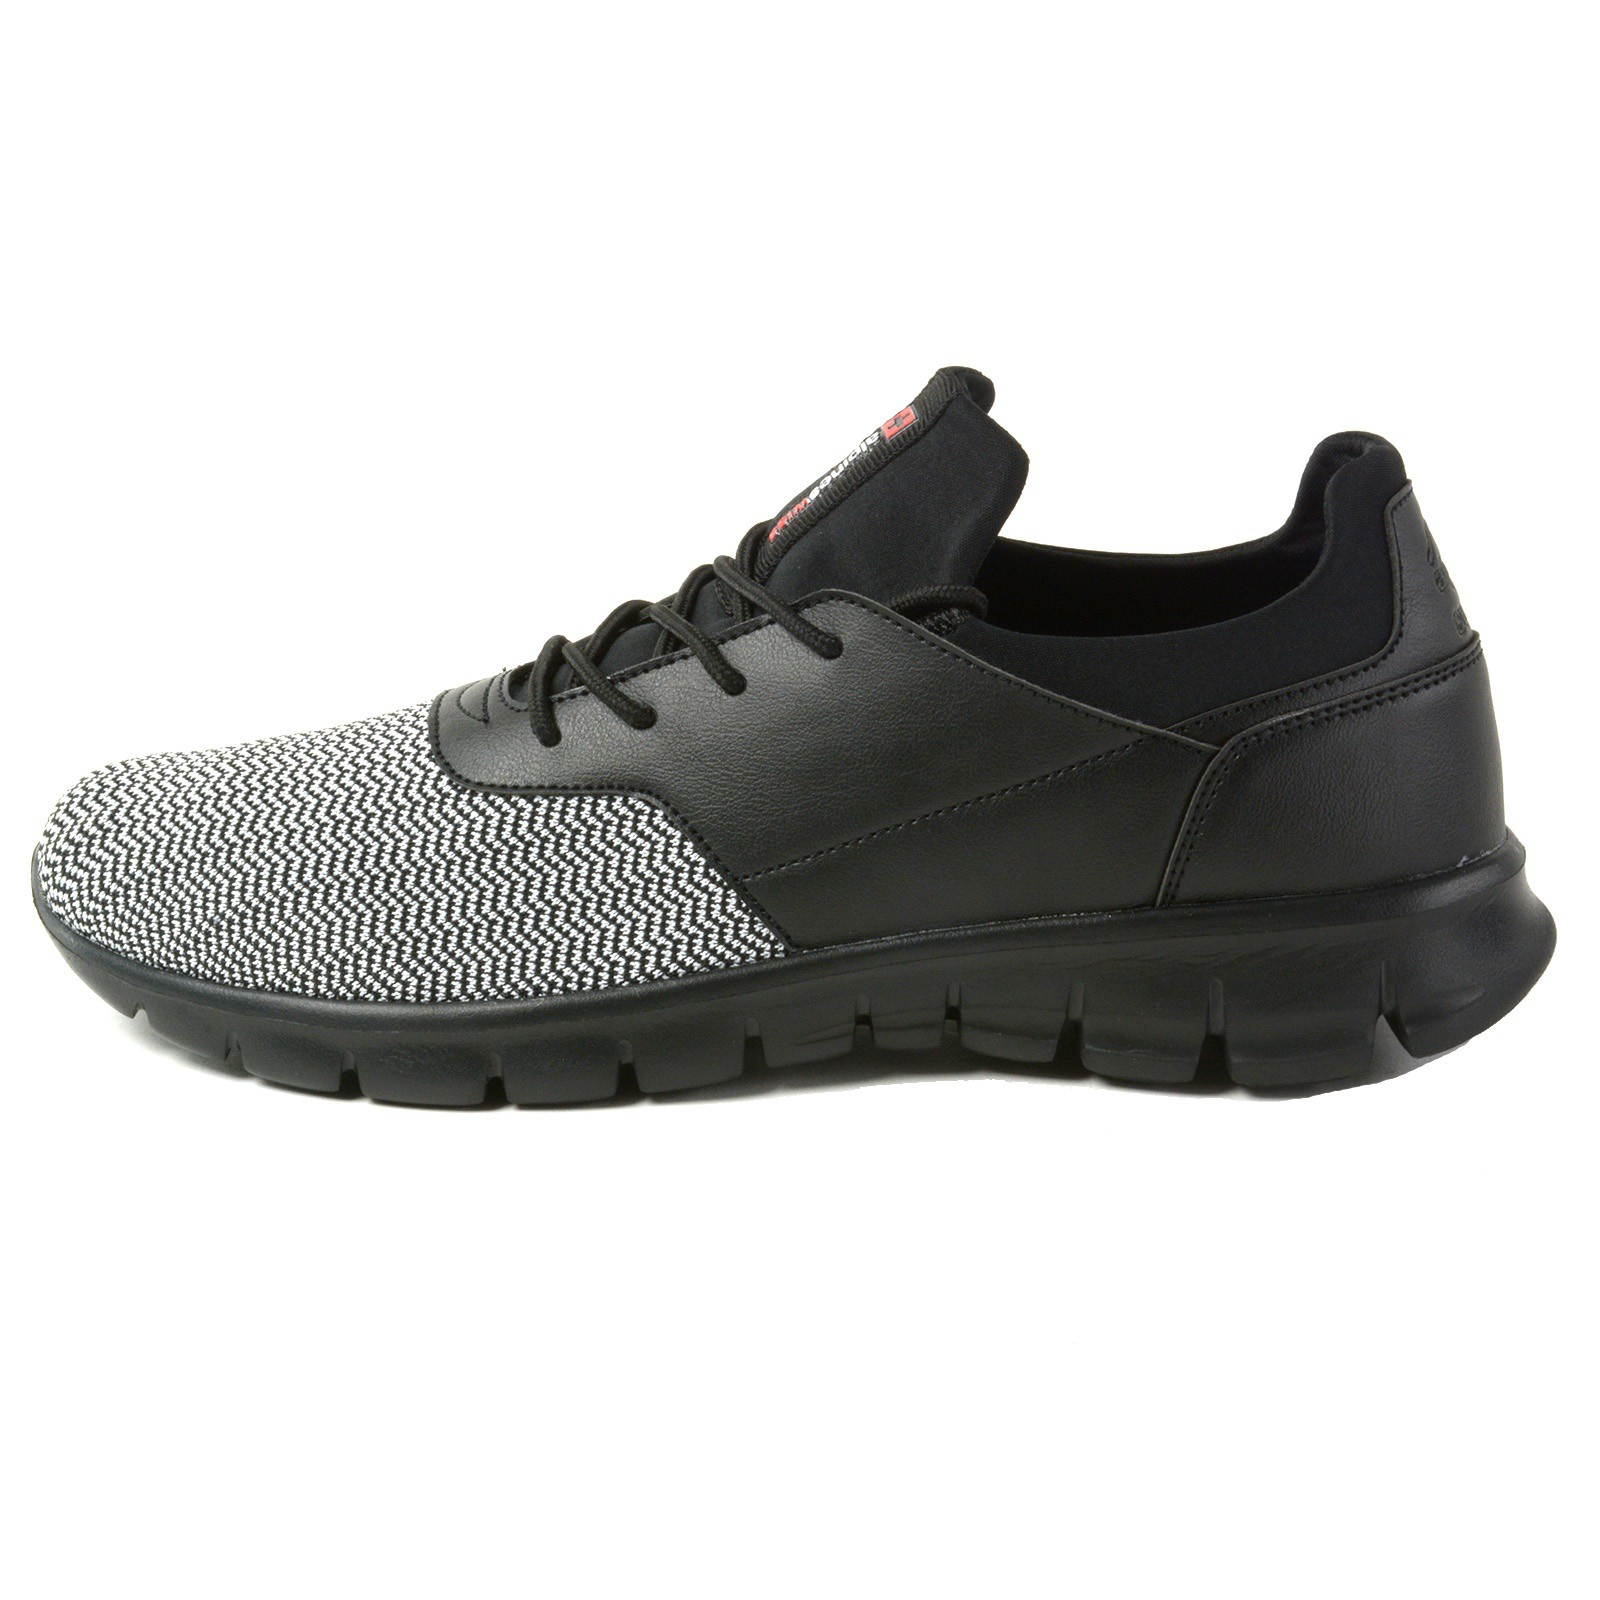 Alpine-Swiss-Leo-Men-Sneakers-Flex-Knit-Tennis-Shoes-Casual-Athletic-Lightweight thumbnail 12